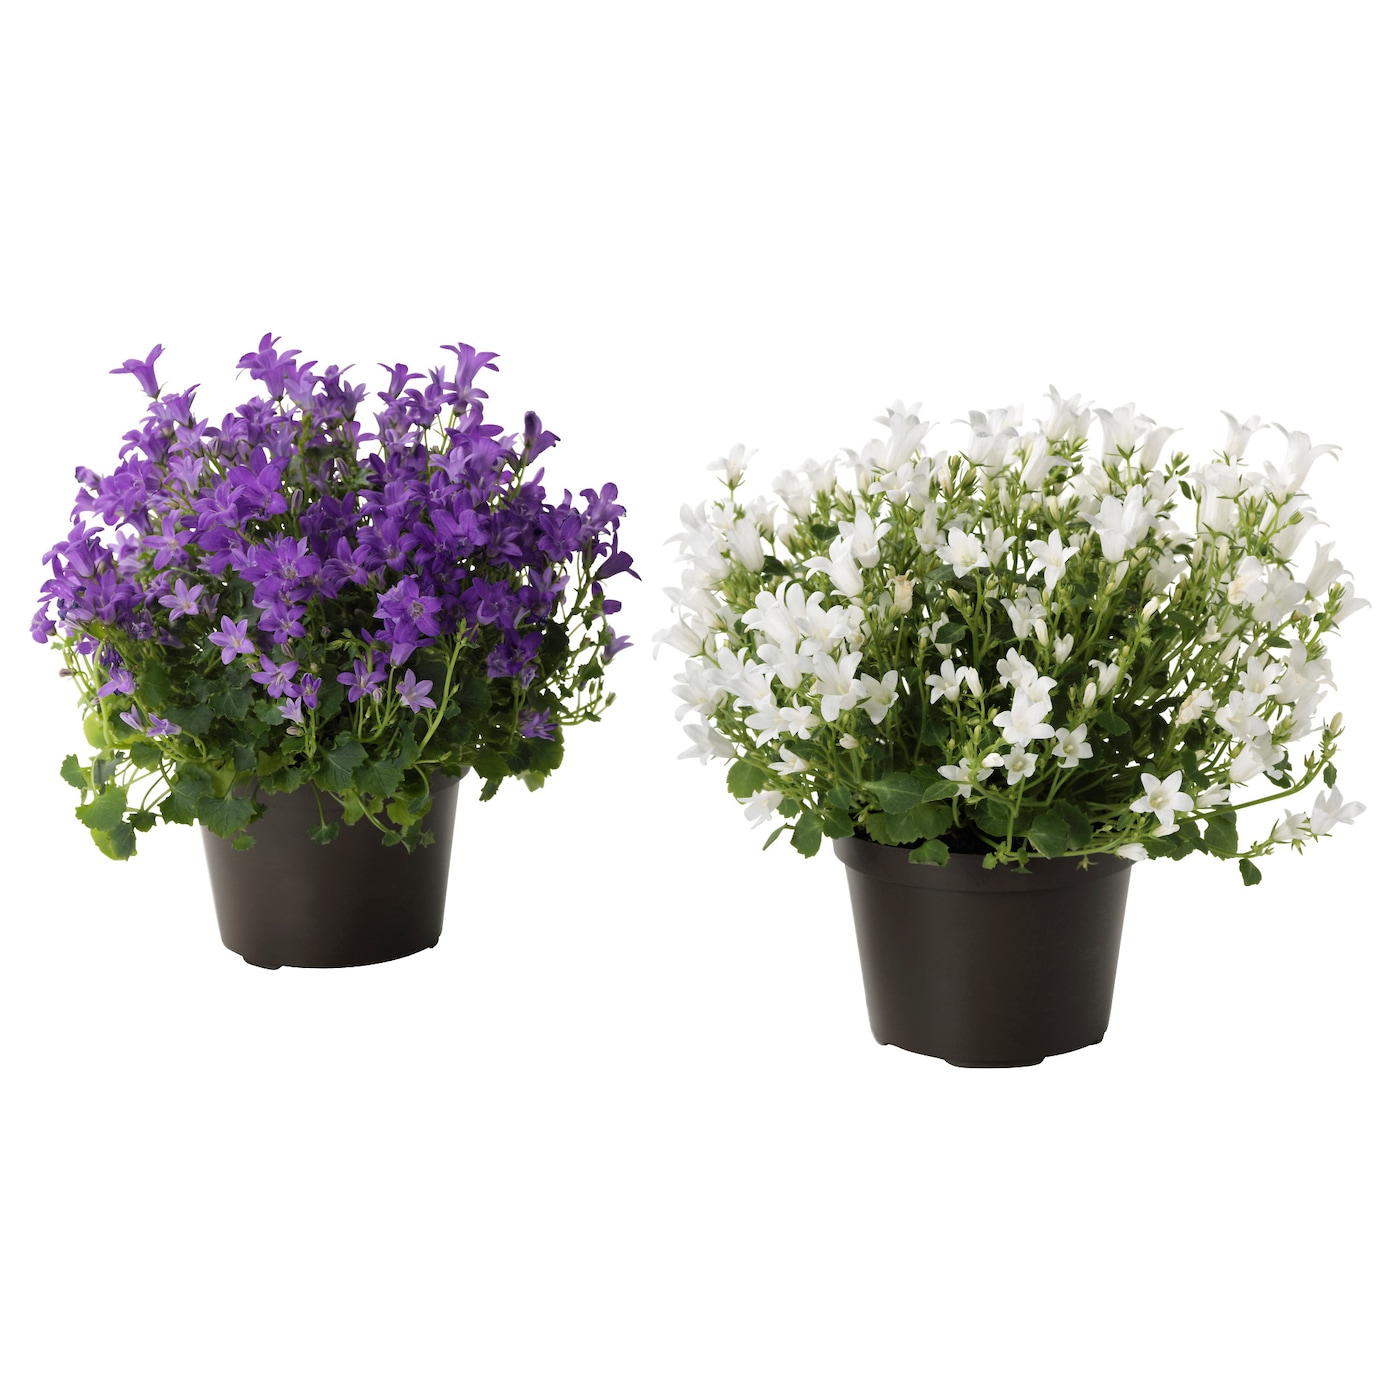 IKEA CAMPANULA PORTENSCHLAGIANA potted plant